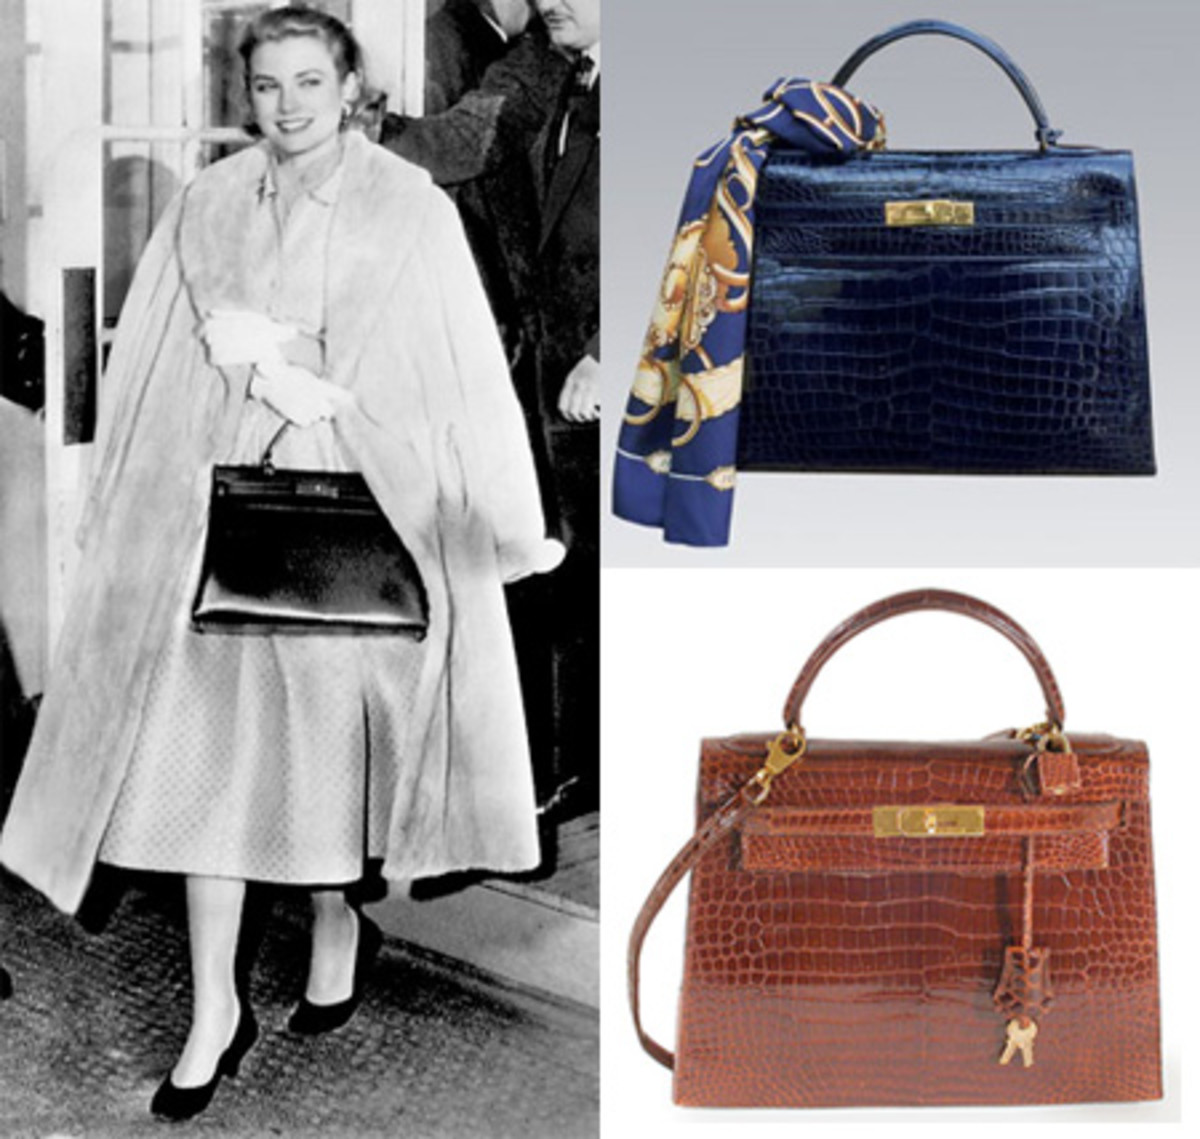 Grace Kelly with the Hermes handbag named in her honor